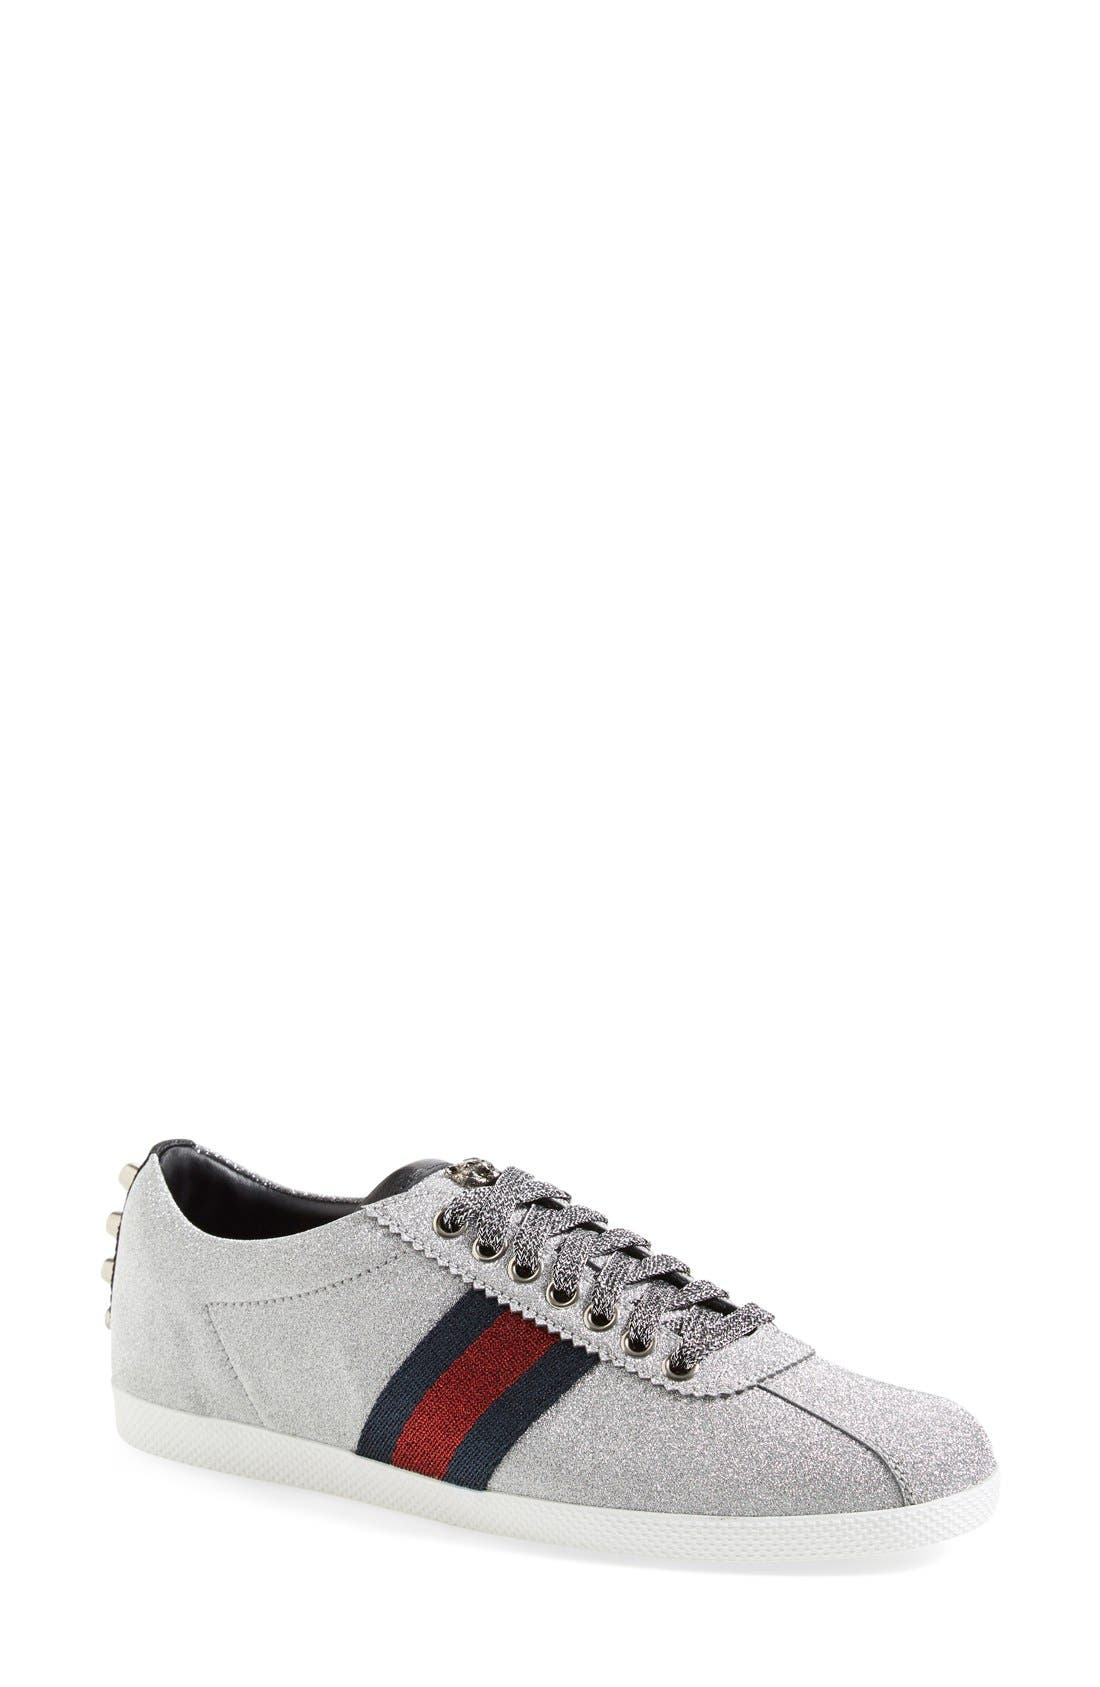 Alternate Image 1 Selected - Gucci Lace-Up Sneaker (Women)